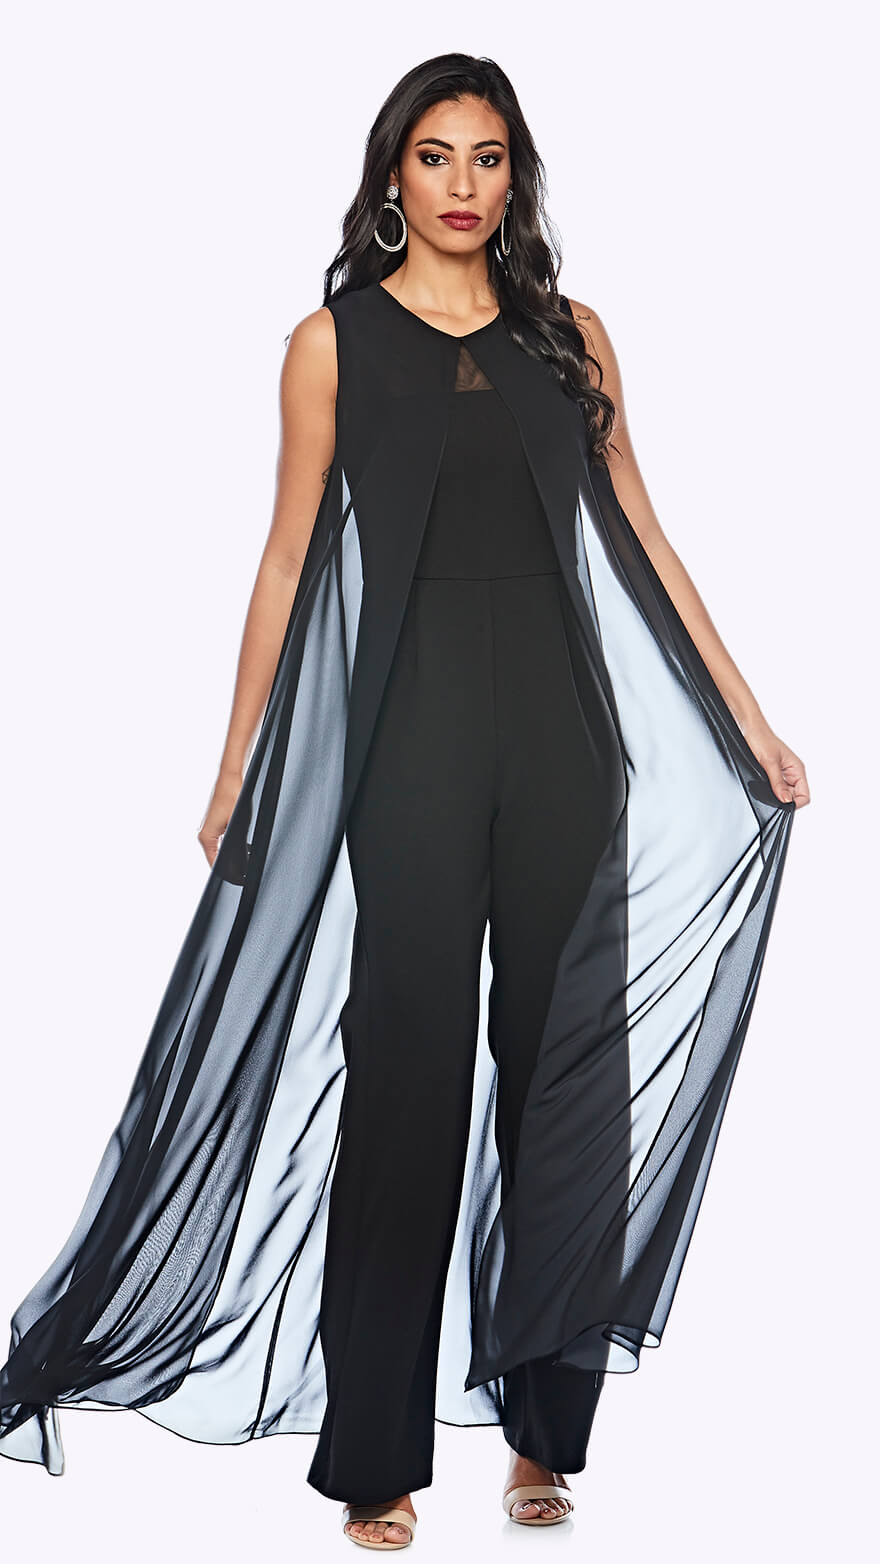 Z0209 Wide leg jumpsuit with chiffon overlay